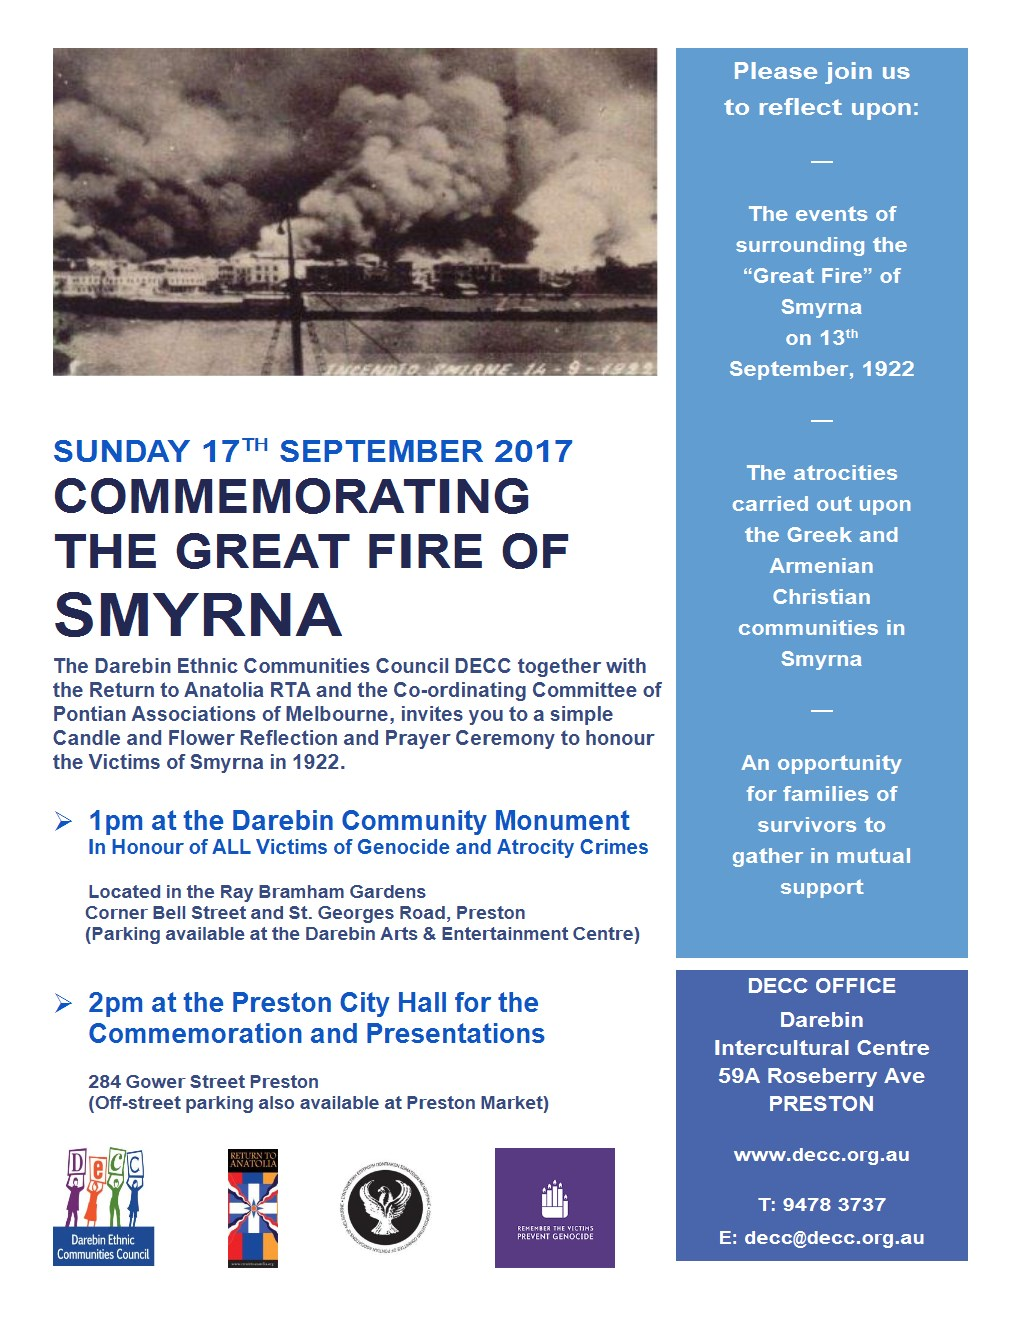 SMYRNA  EVENT SUNDAY 17TH SEPTEMBER 2017